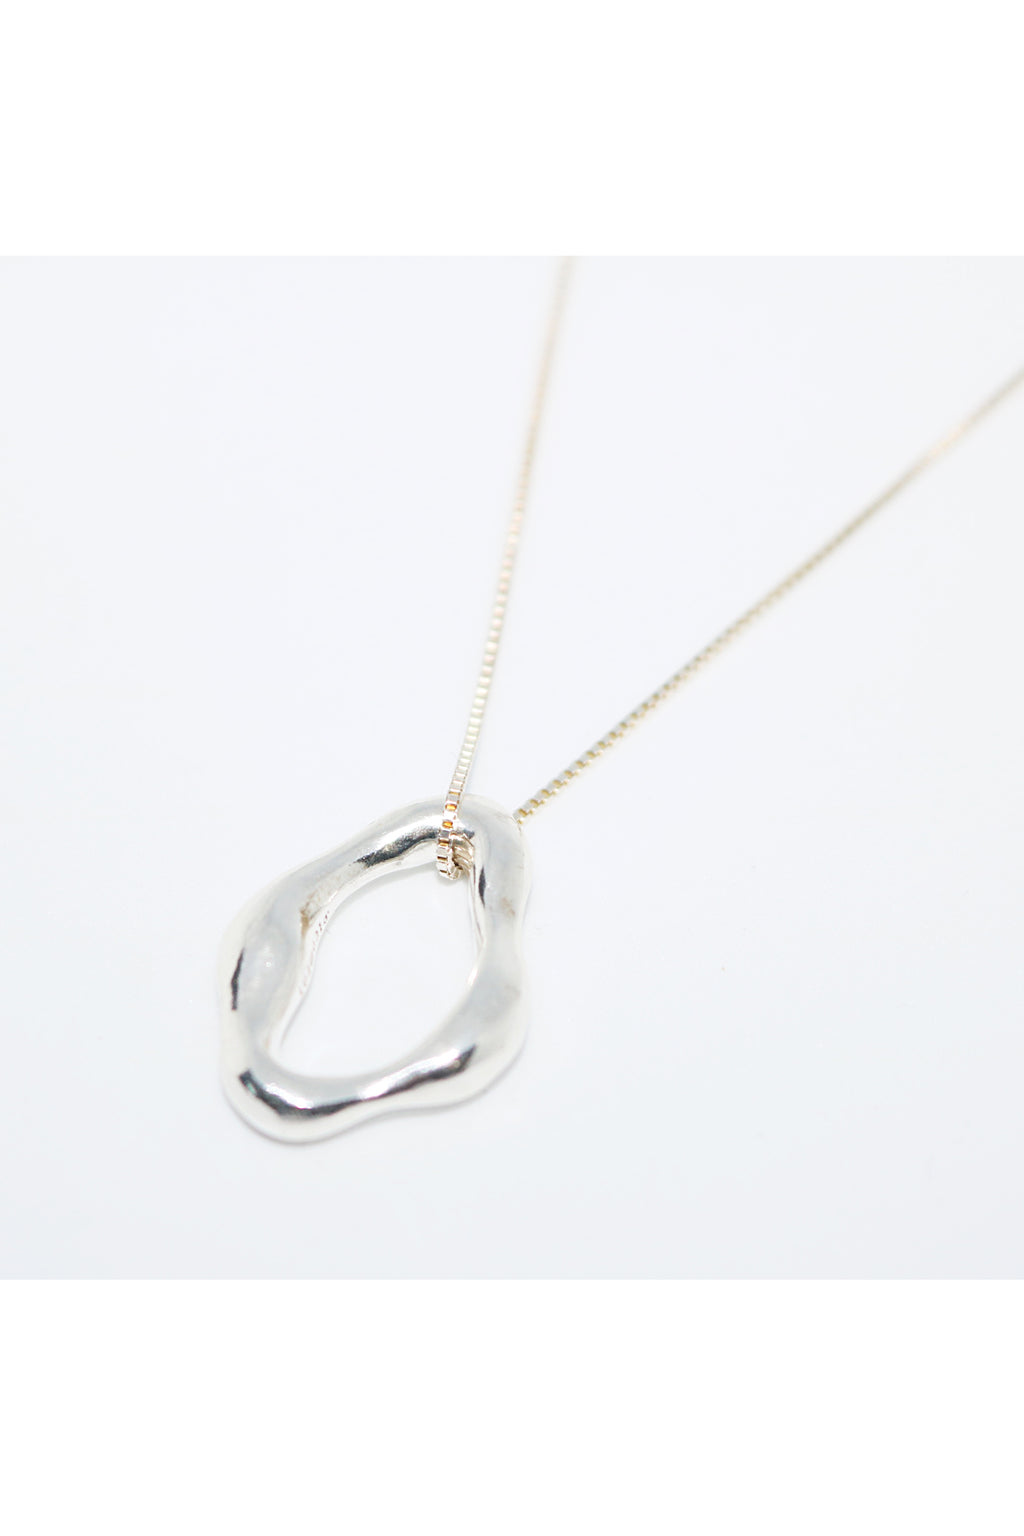 Silver Floating Circle Necklace